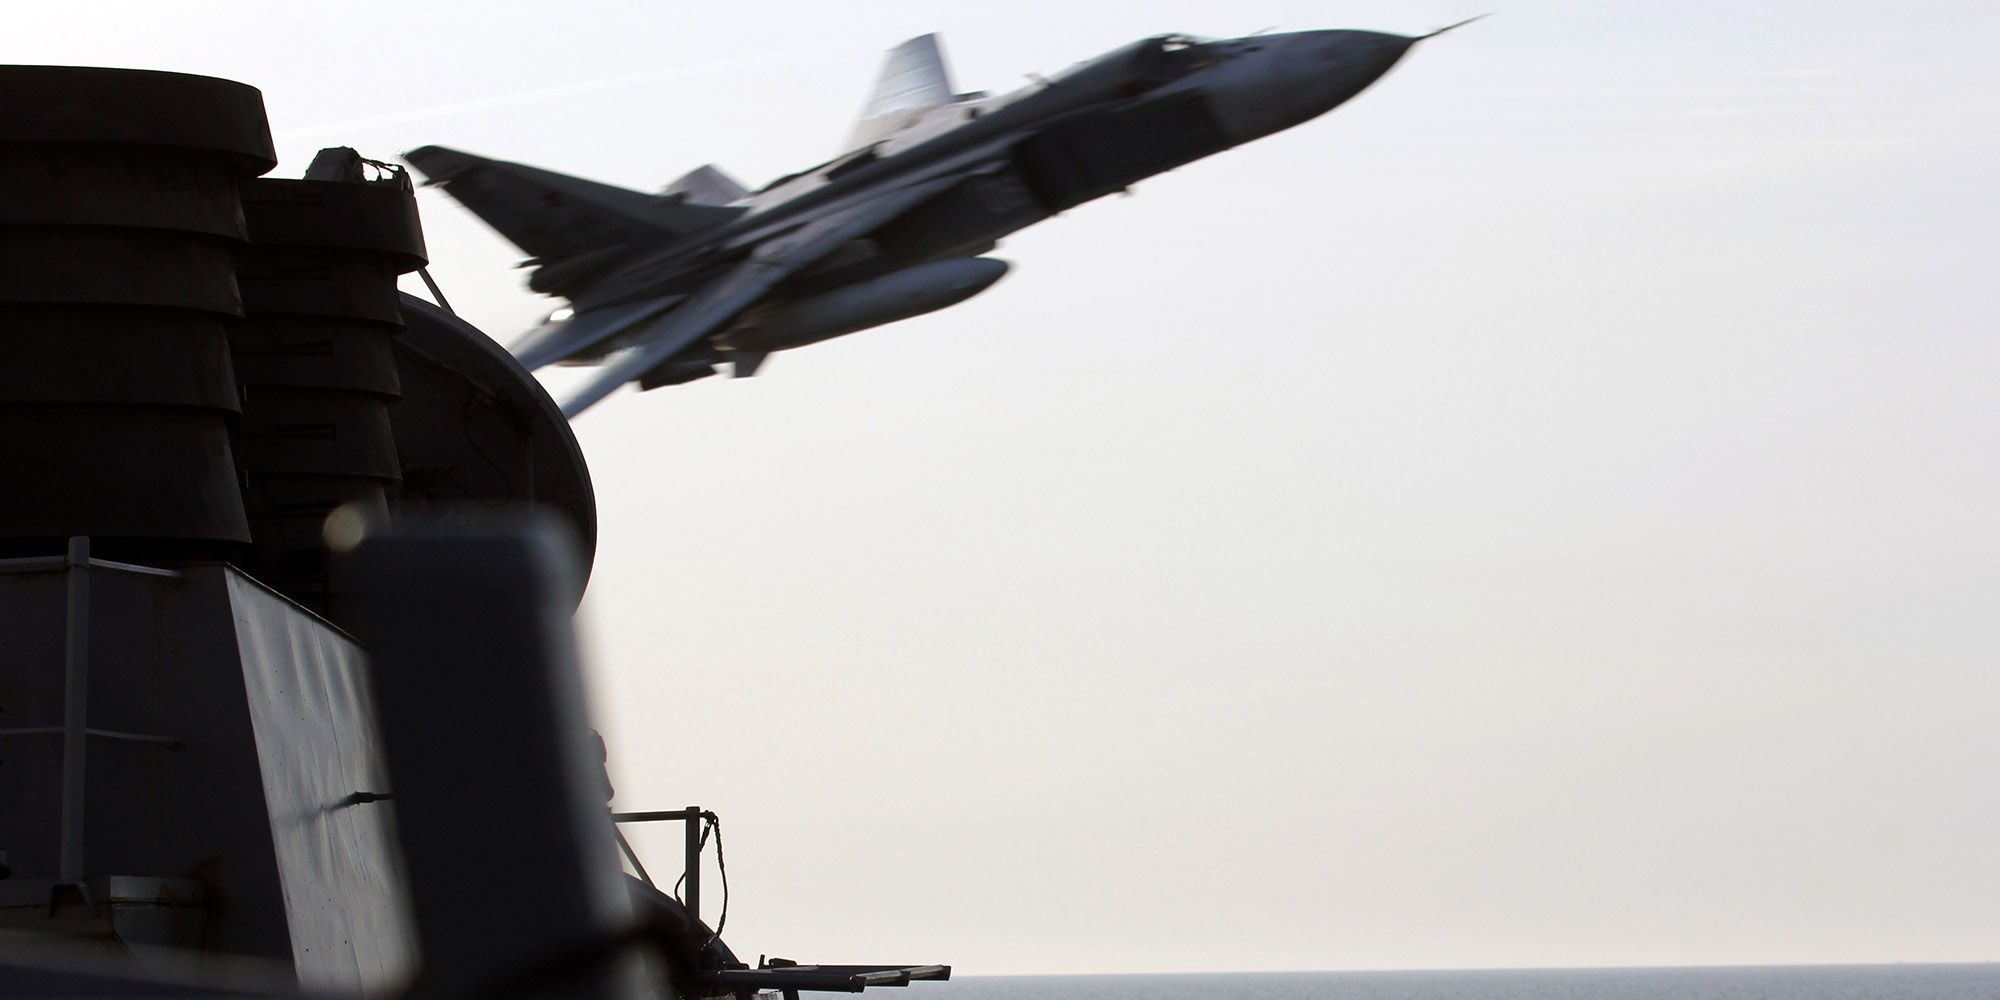 Why the Russians Decided to Harass That U.S. Navy Destroyer This Week